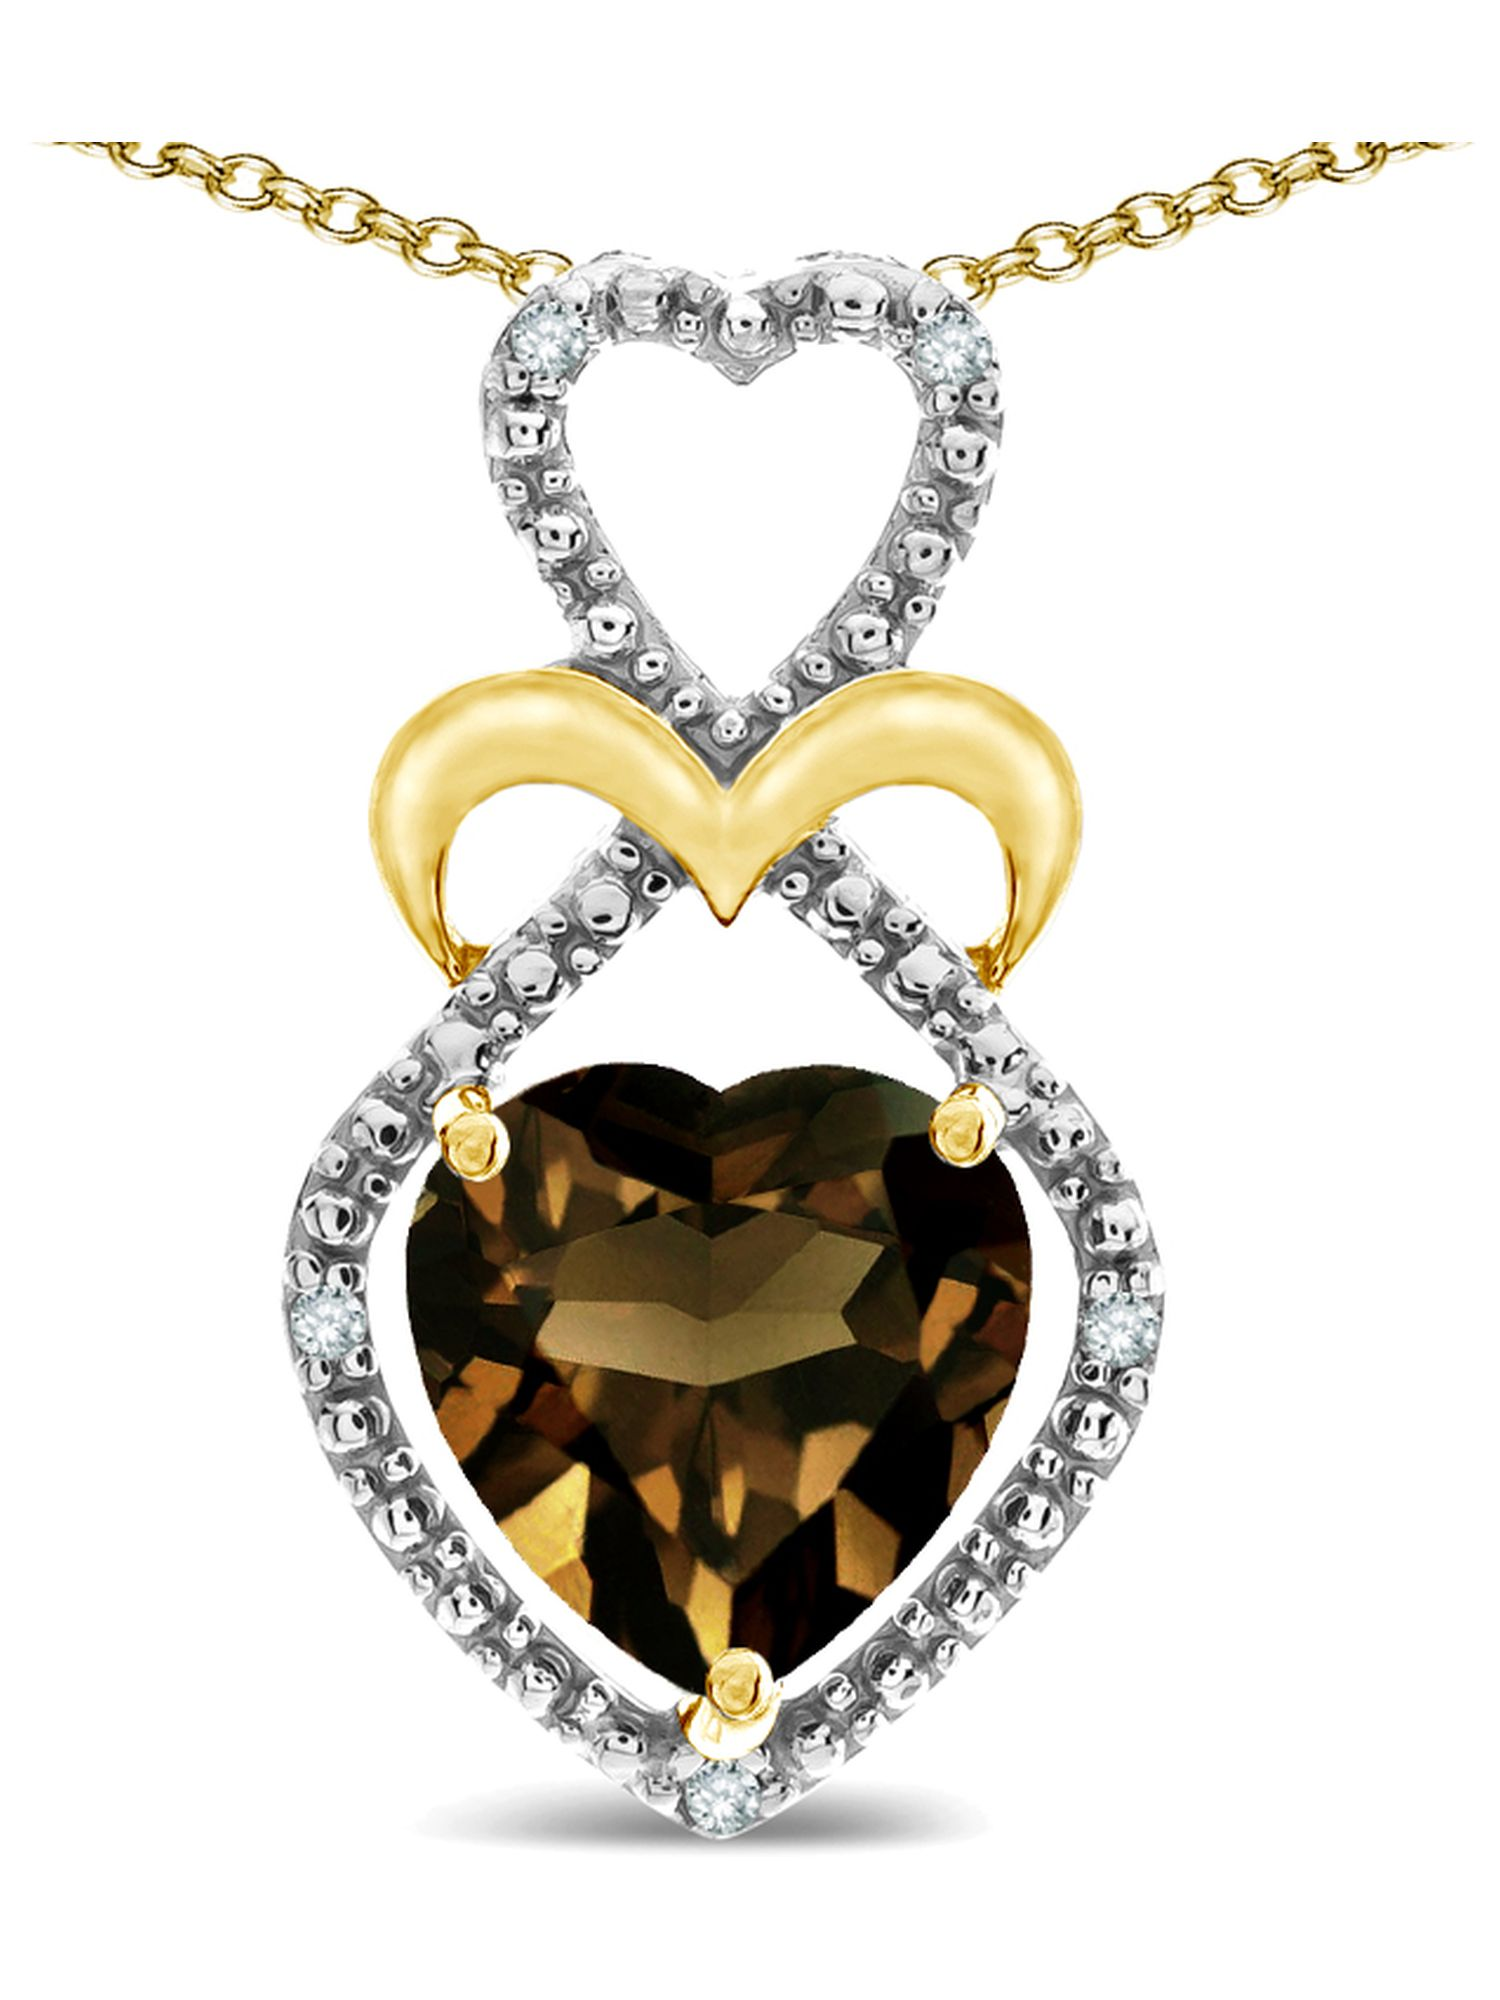 Star K Heart Shape 8mm Genuine Smoky Quartz Heart Halo Embrace Pendant Necklace 10k Yellow Gold with Rhodium Finish